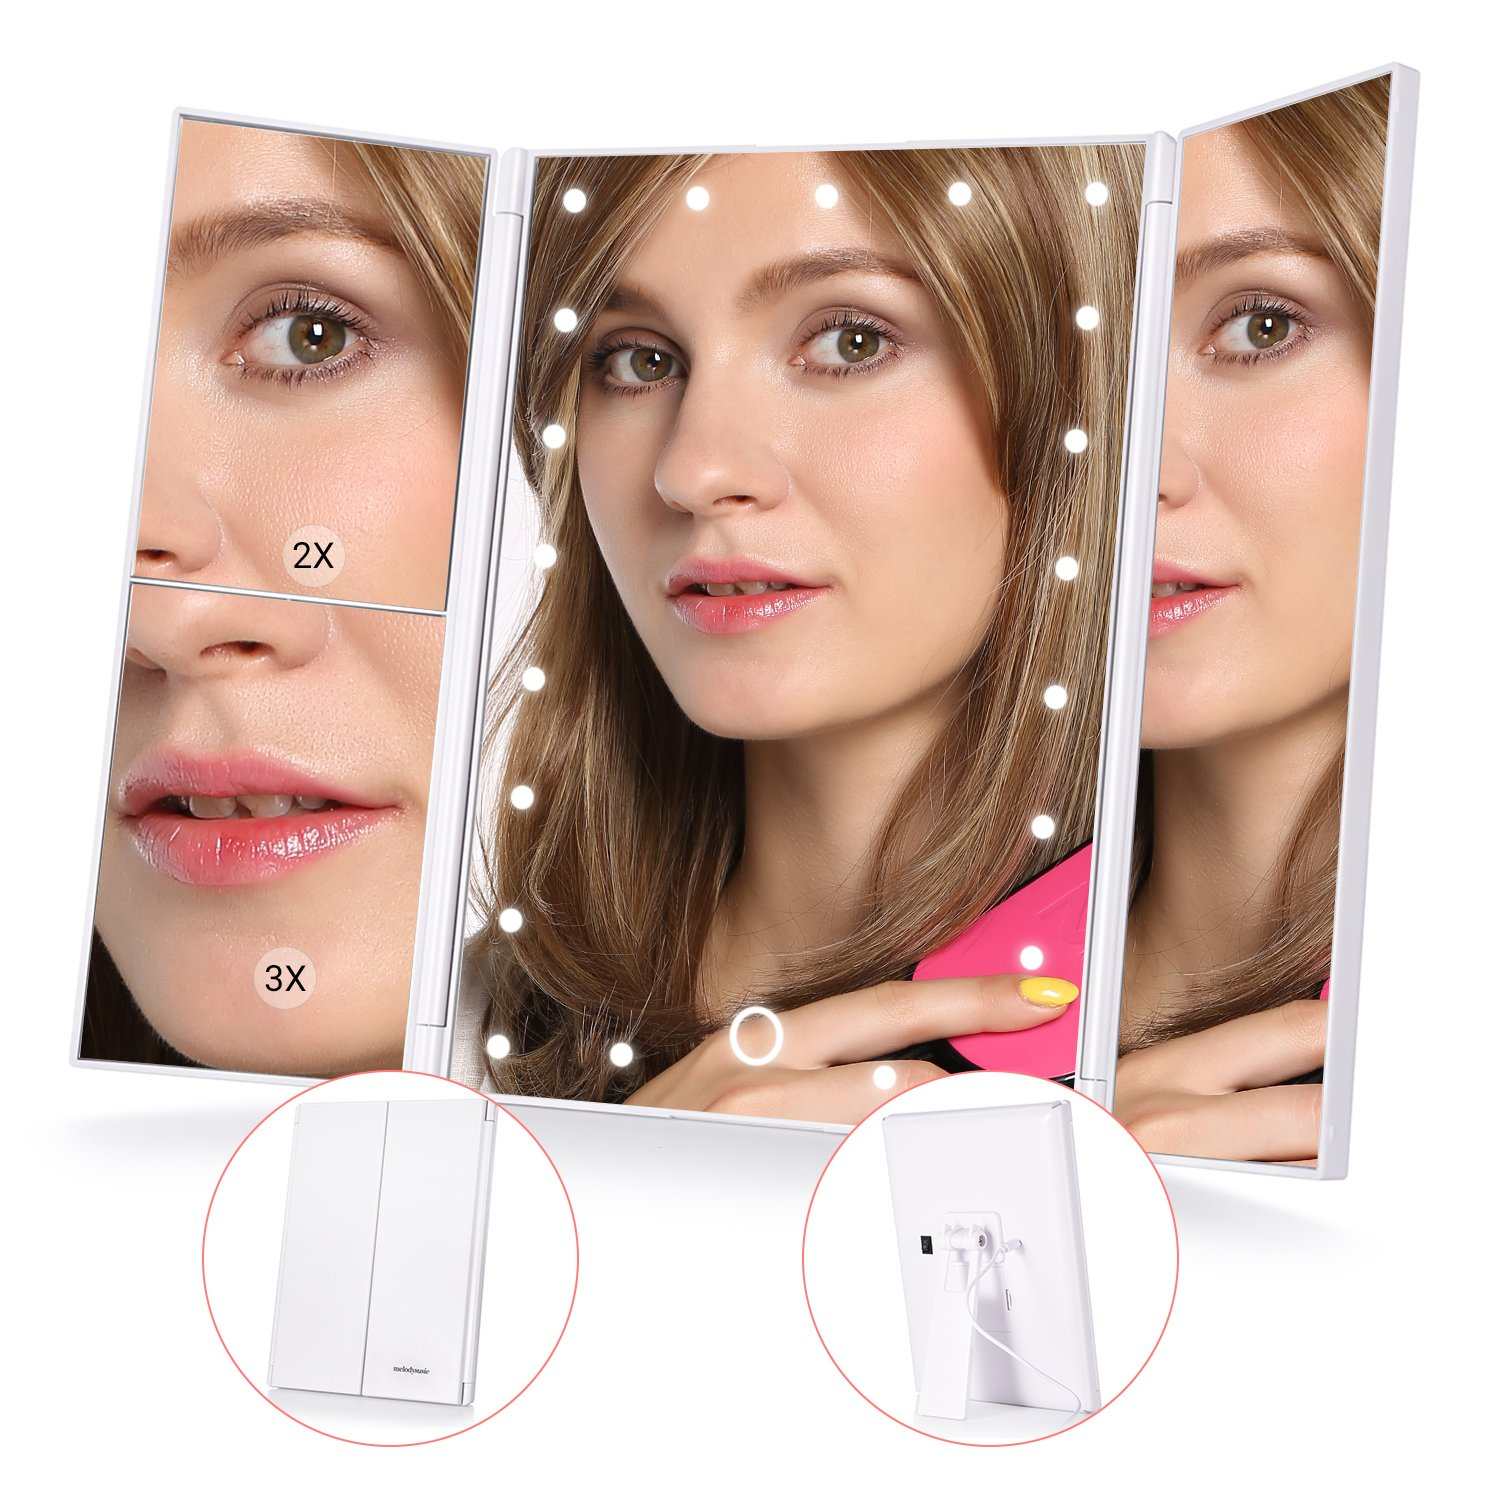 MelodySusie Lighted Makeup Mirror - Trifold Vanity Mirror with Lights, 21pcs LED Touch Screen Magnifying Mirror with 1x/2x/3x Magnification, Adjustable Stand for Desktop Cosmetic Makeup